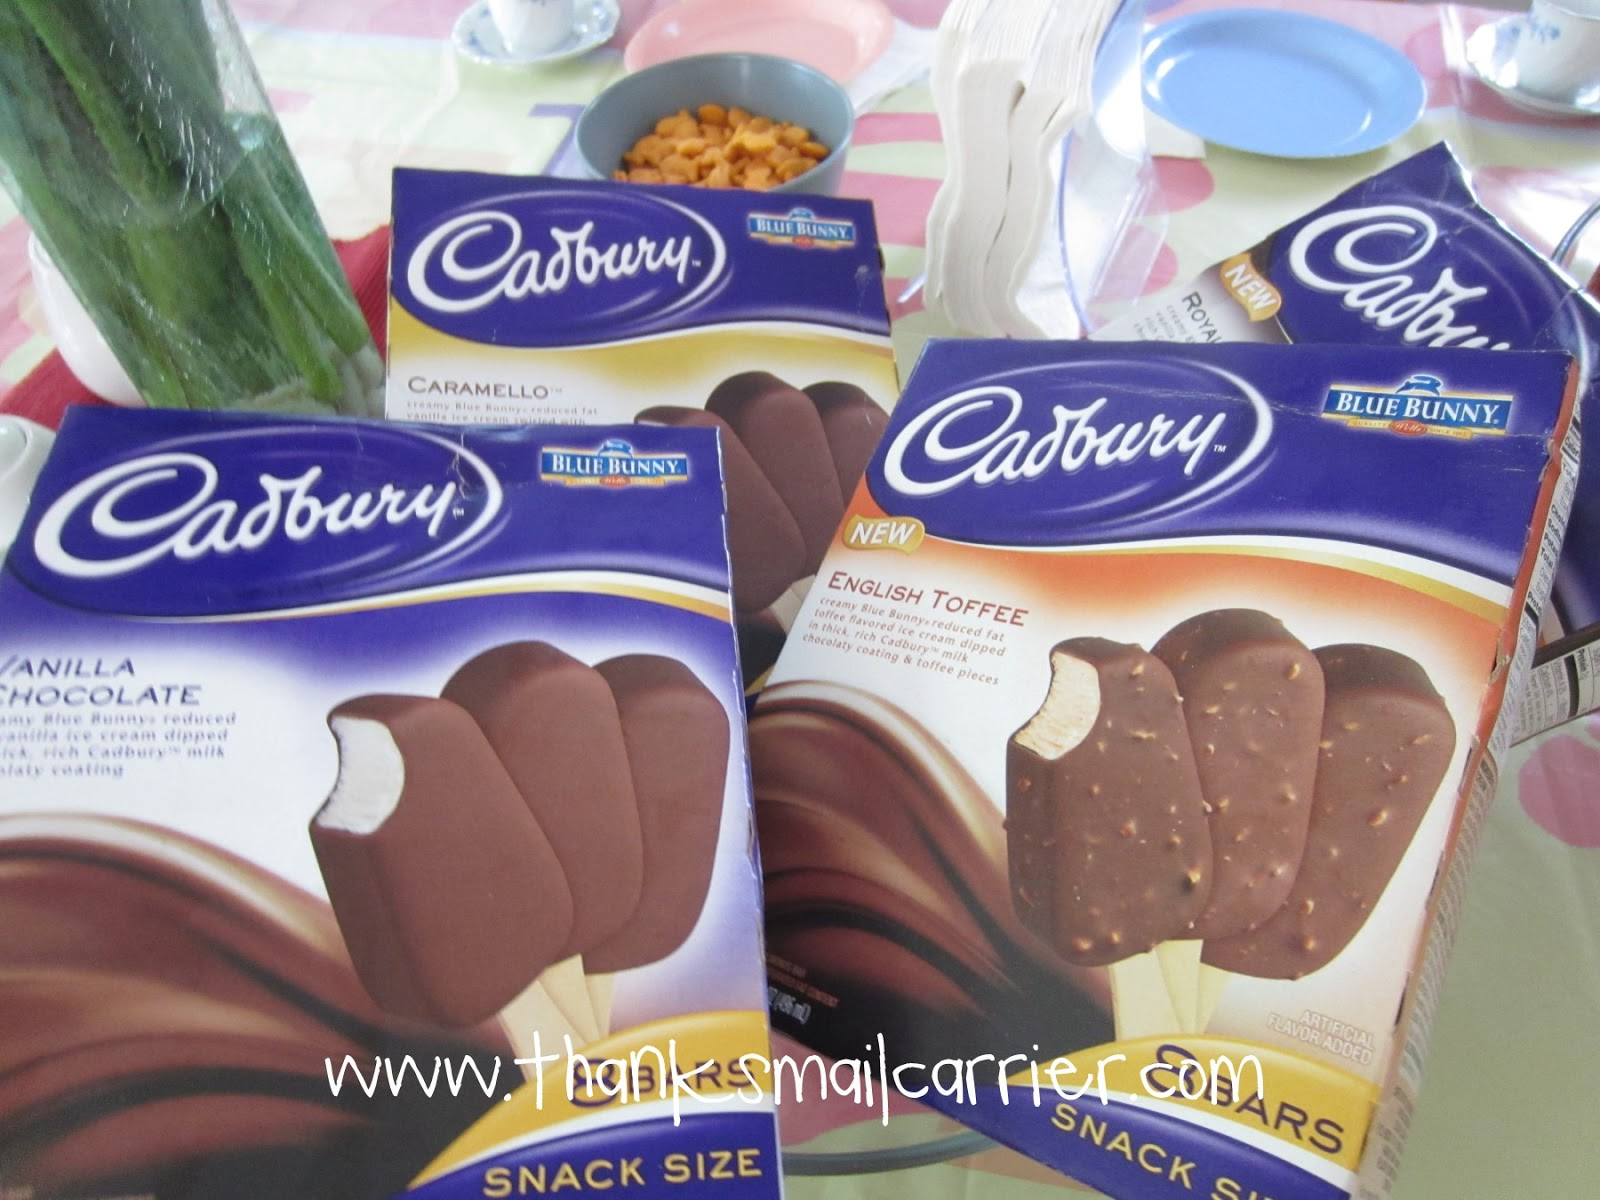 Cadbury ice cream bars